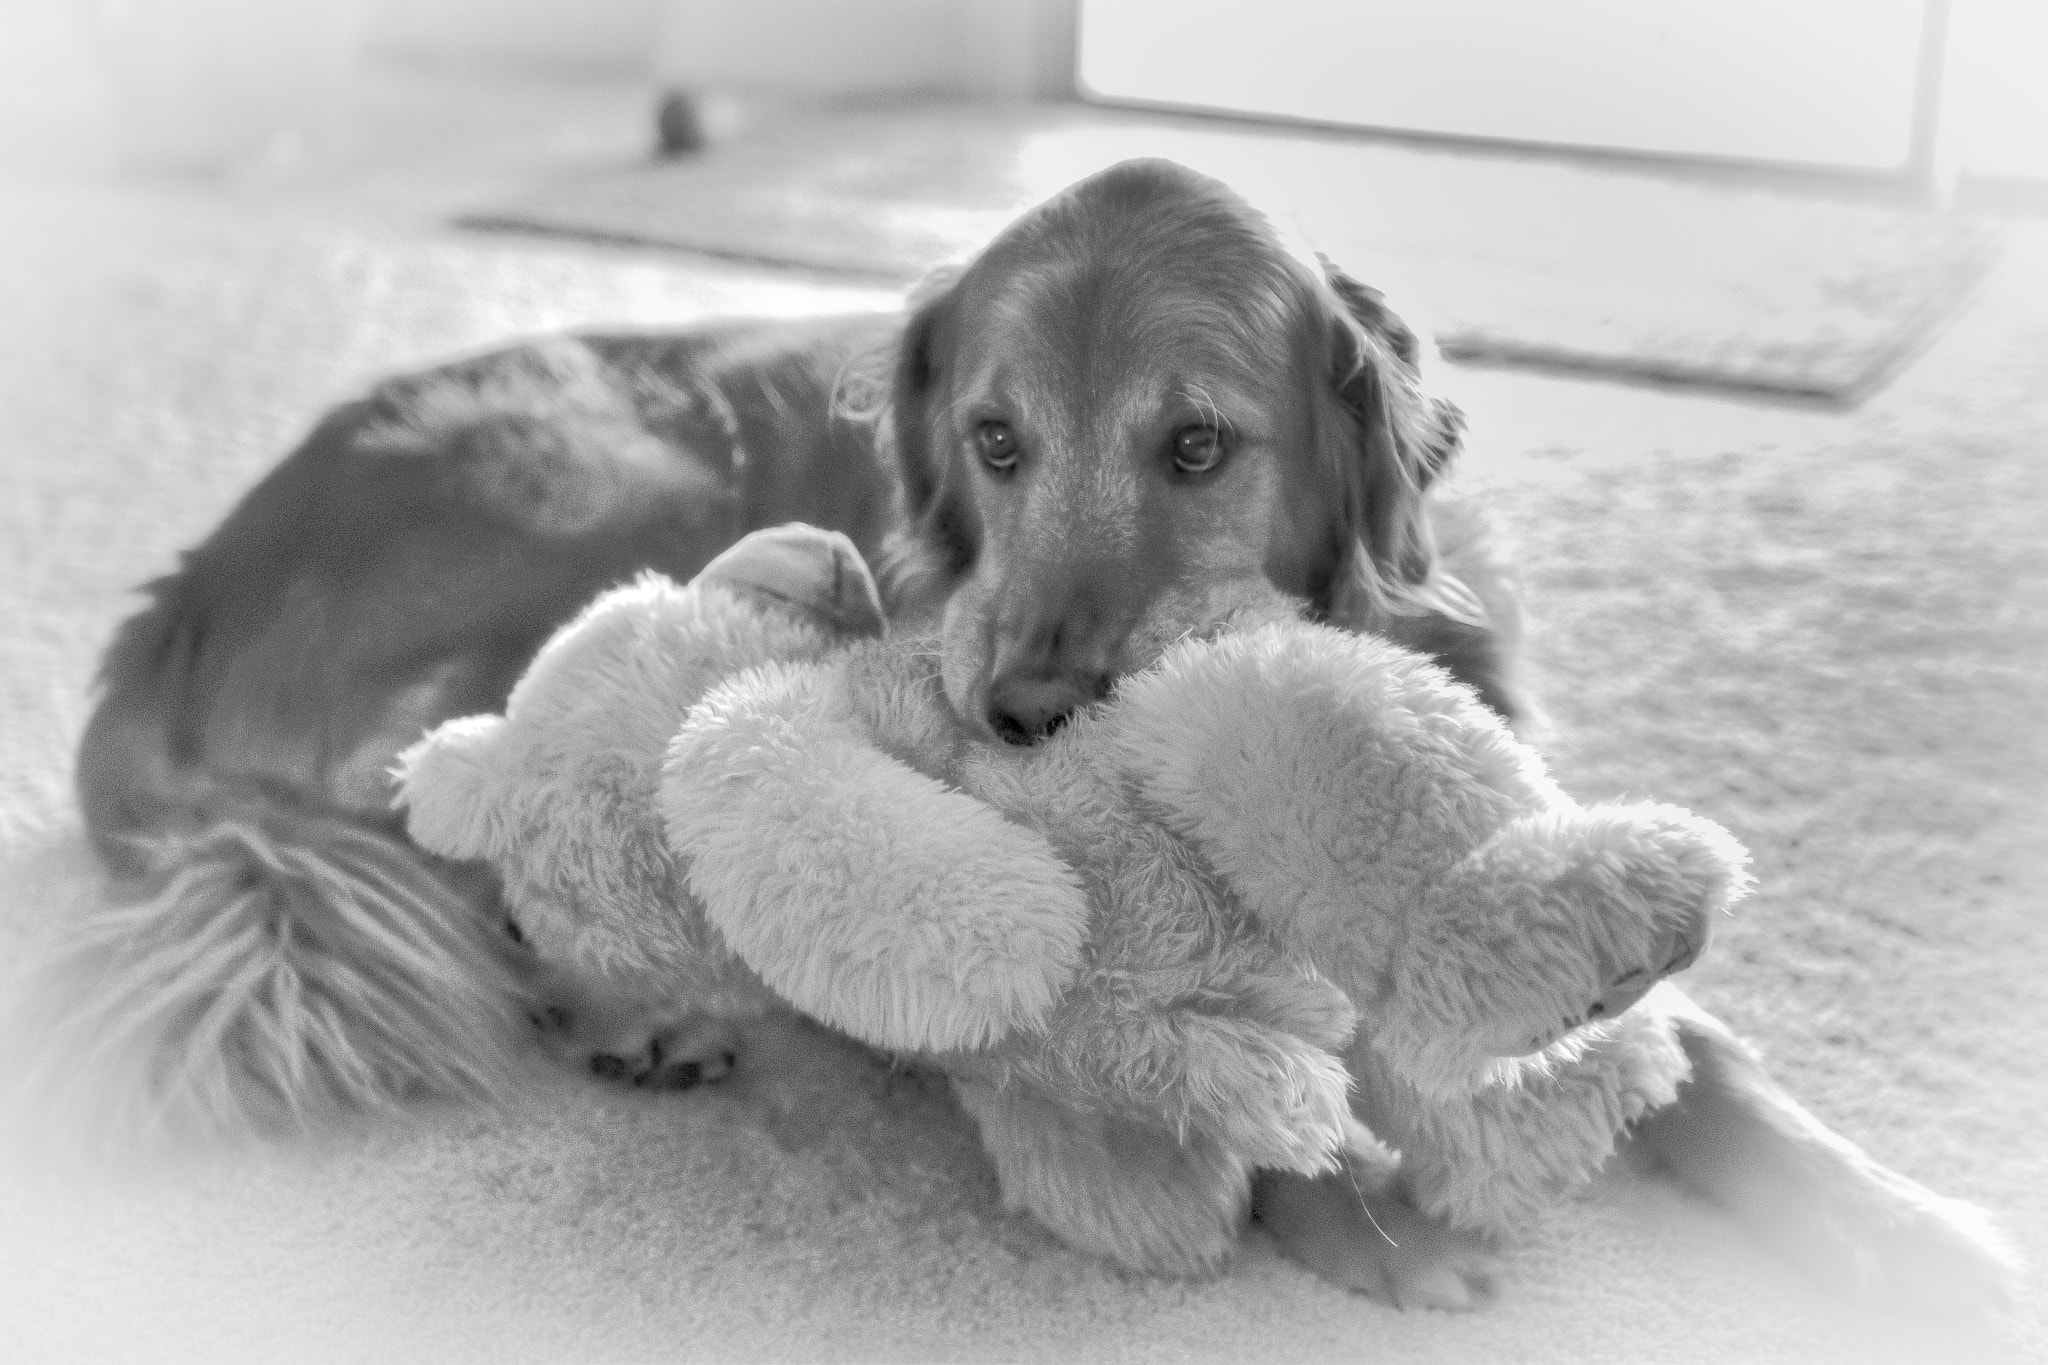 Photograph Casey and the bear by Chester Johnson on 500px